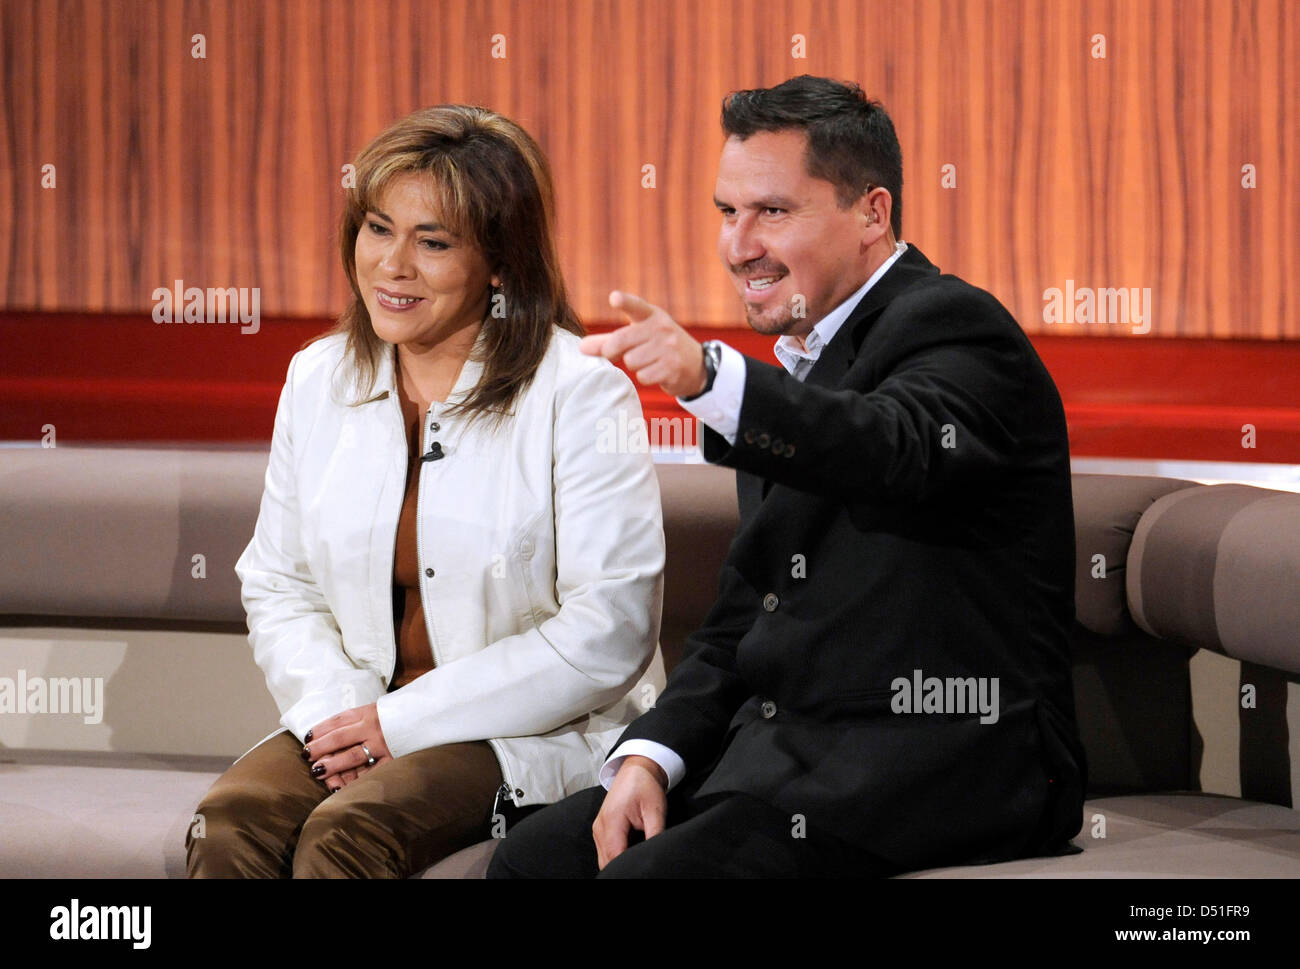 Edison Pena and his wife Angelica Alvarez talk during the recording of the German TV show 'People 2010' at the Bavaria Stock Photo